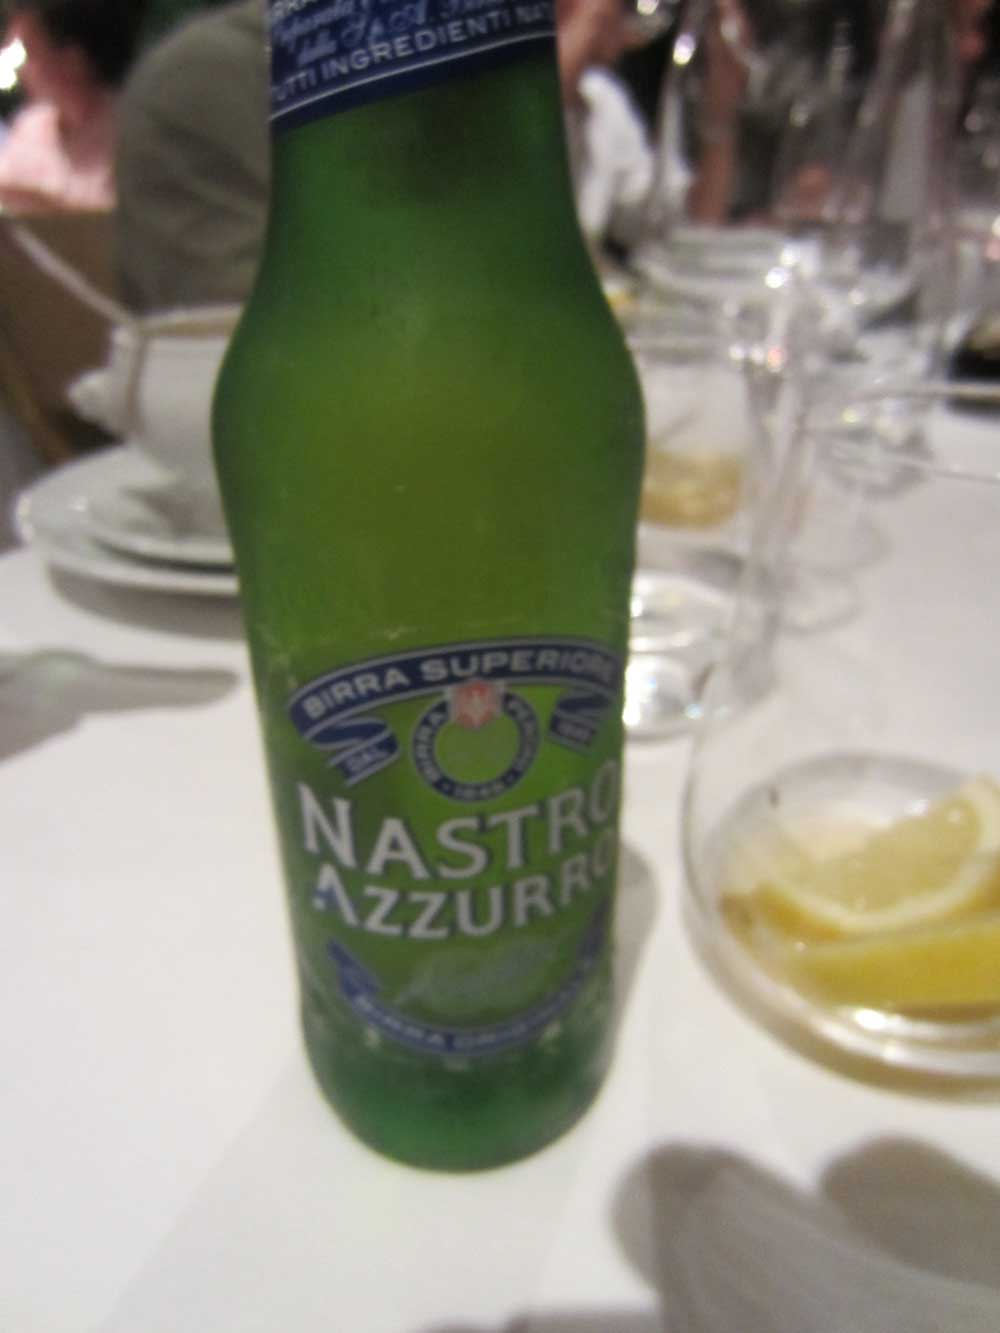 Italian beer.. many a went down that night!